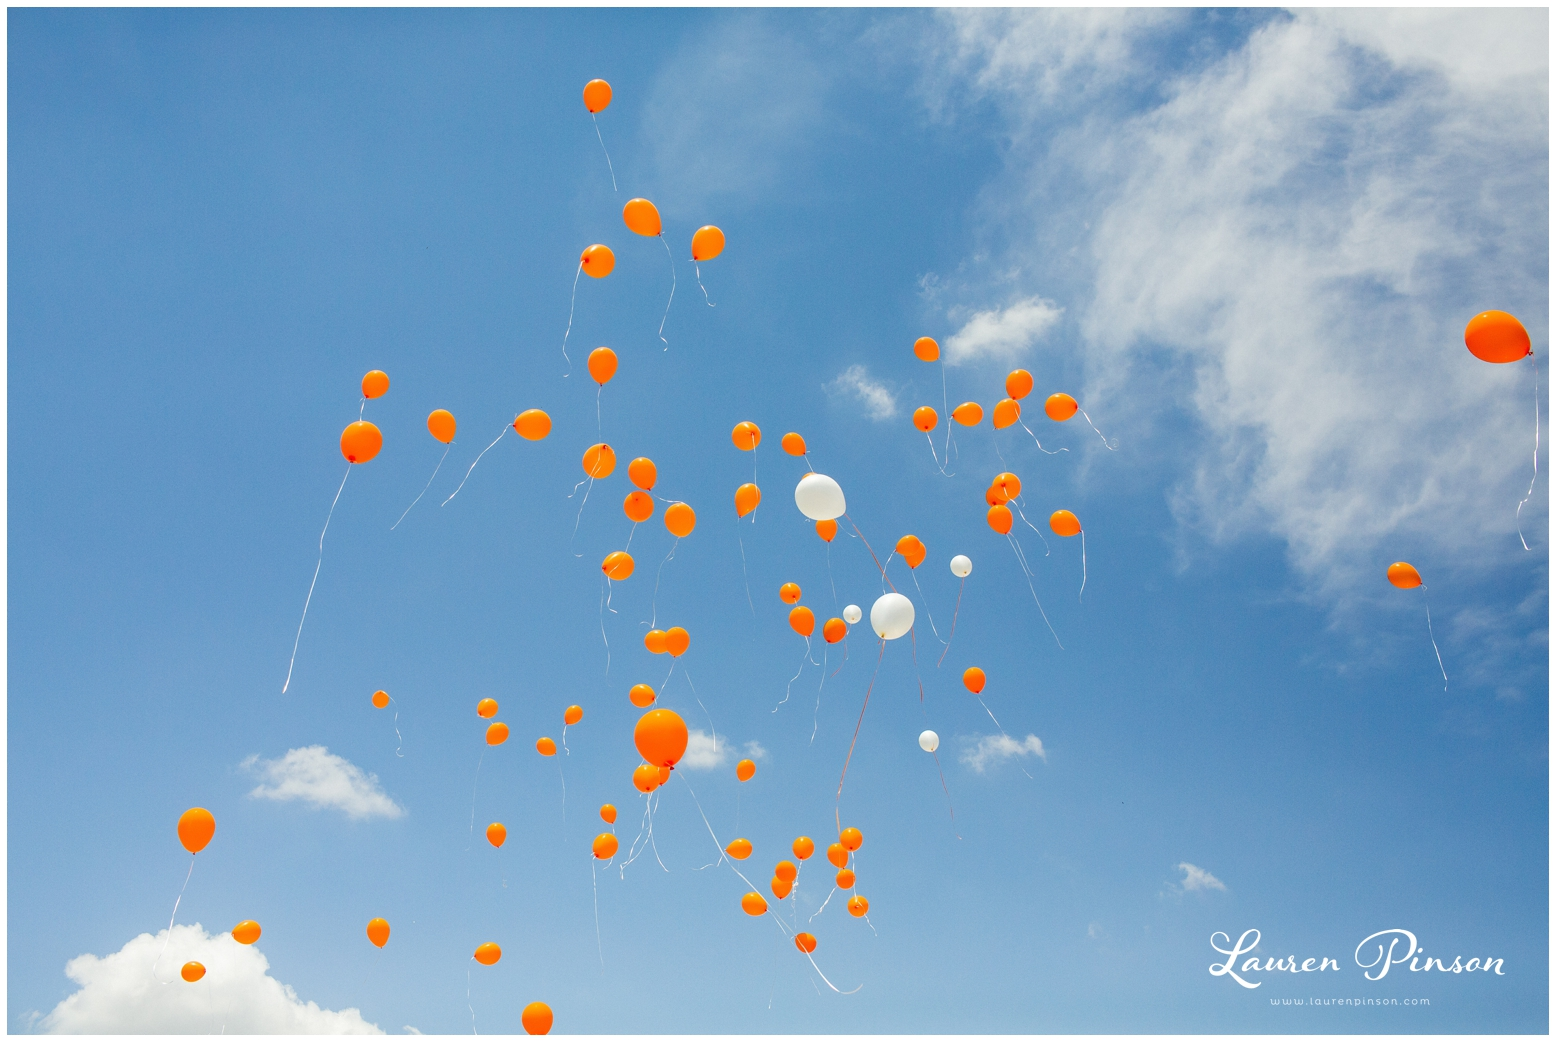 wichita-falls-coyote-ranch-resort-wedding-texas-photography-family-ceremony-balloons-rustic-lace_0339.jpg